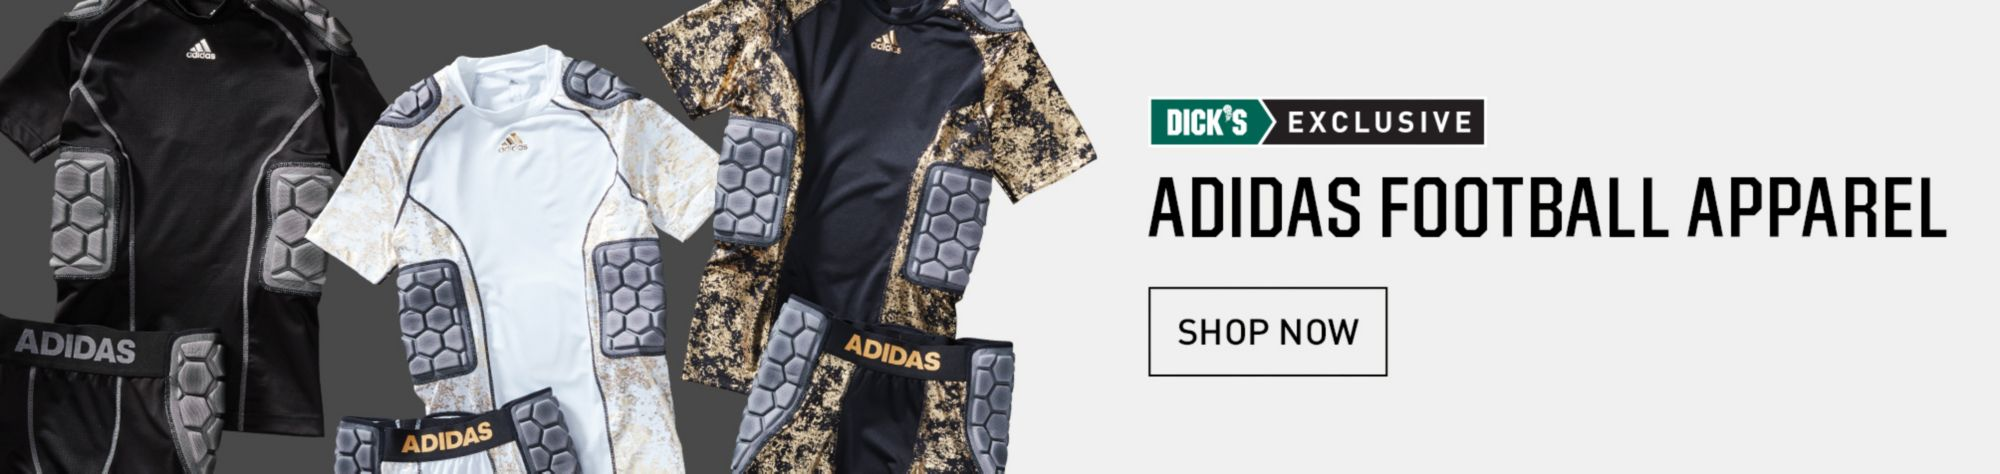 adidas Football Apparel | Dick's Exclusive